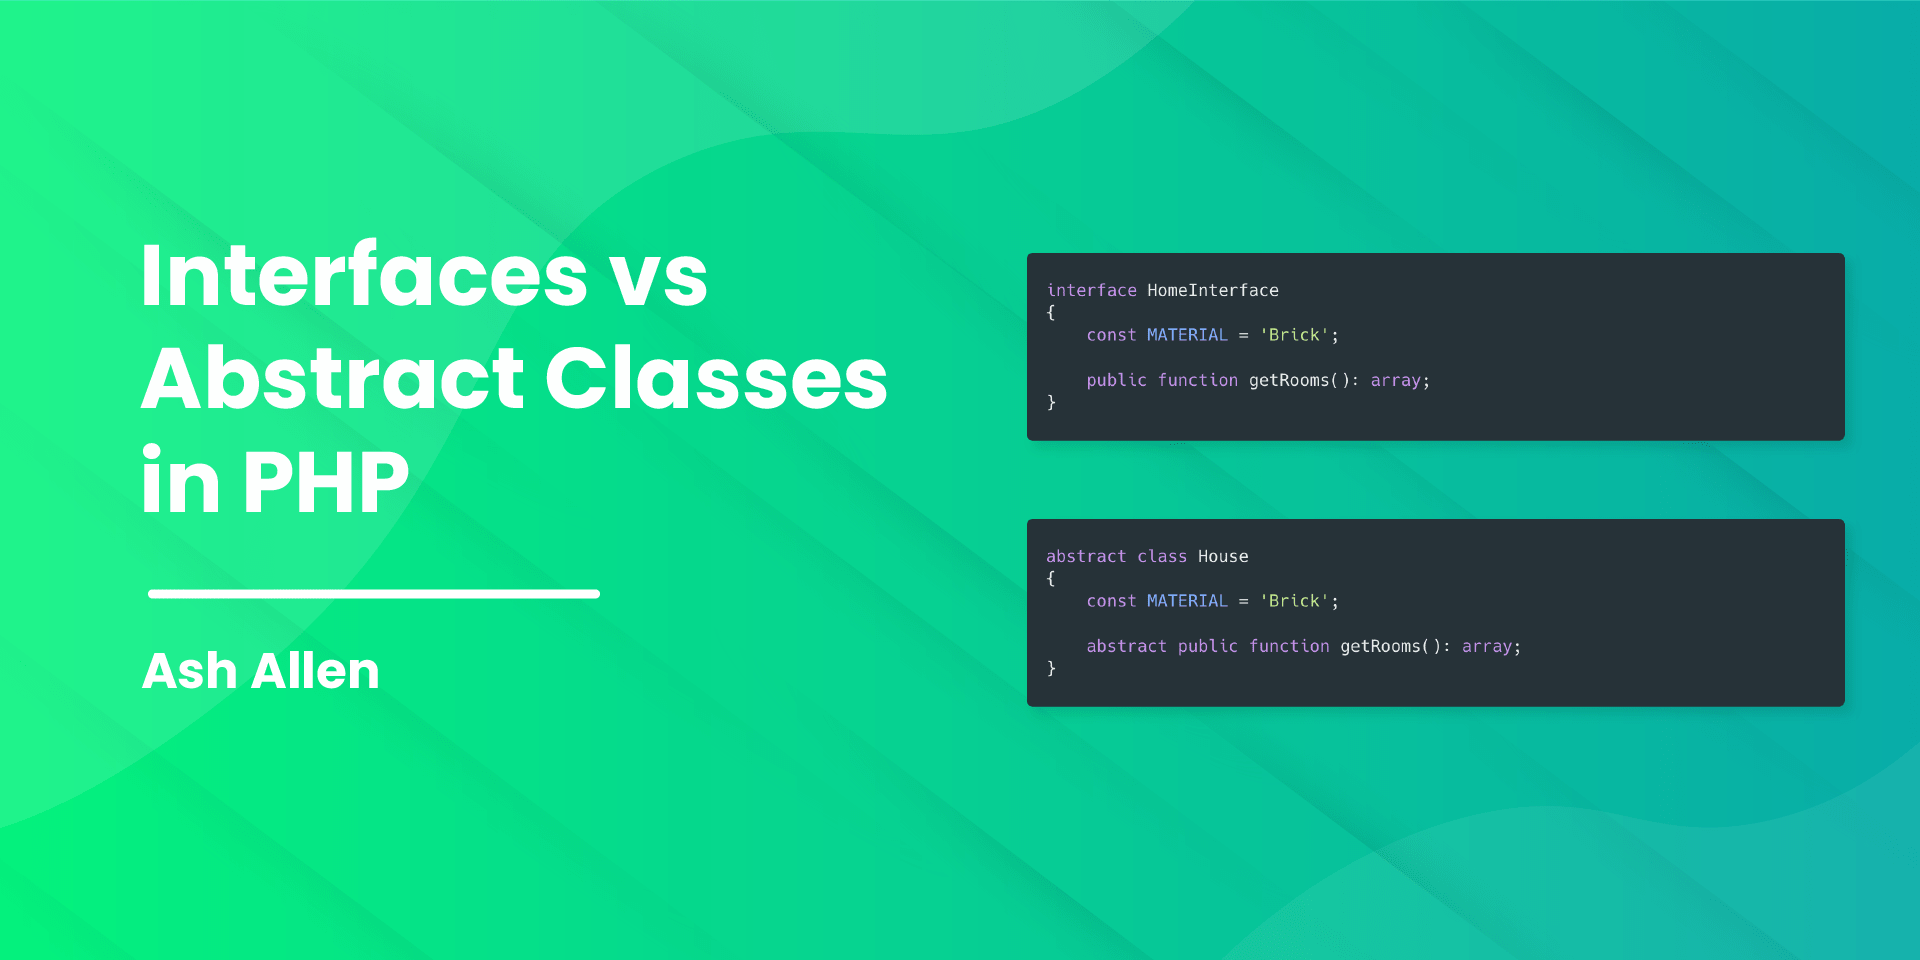 Learn about interfaces and abstract classes in PHP. This article covers different use cases and how to decide when to use an abstract class or interface.